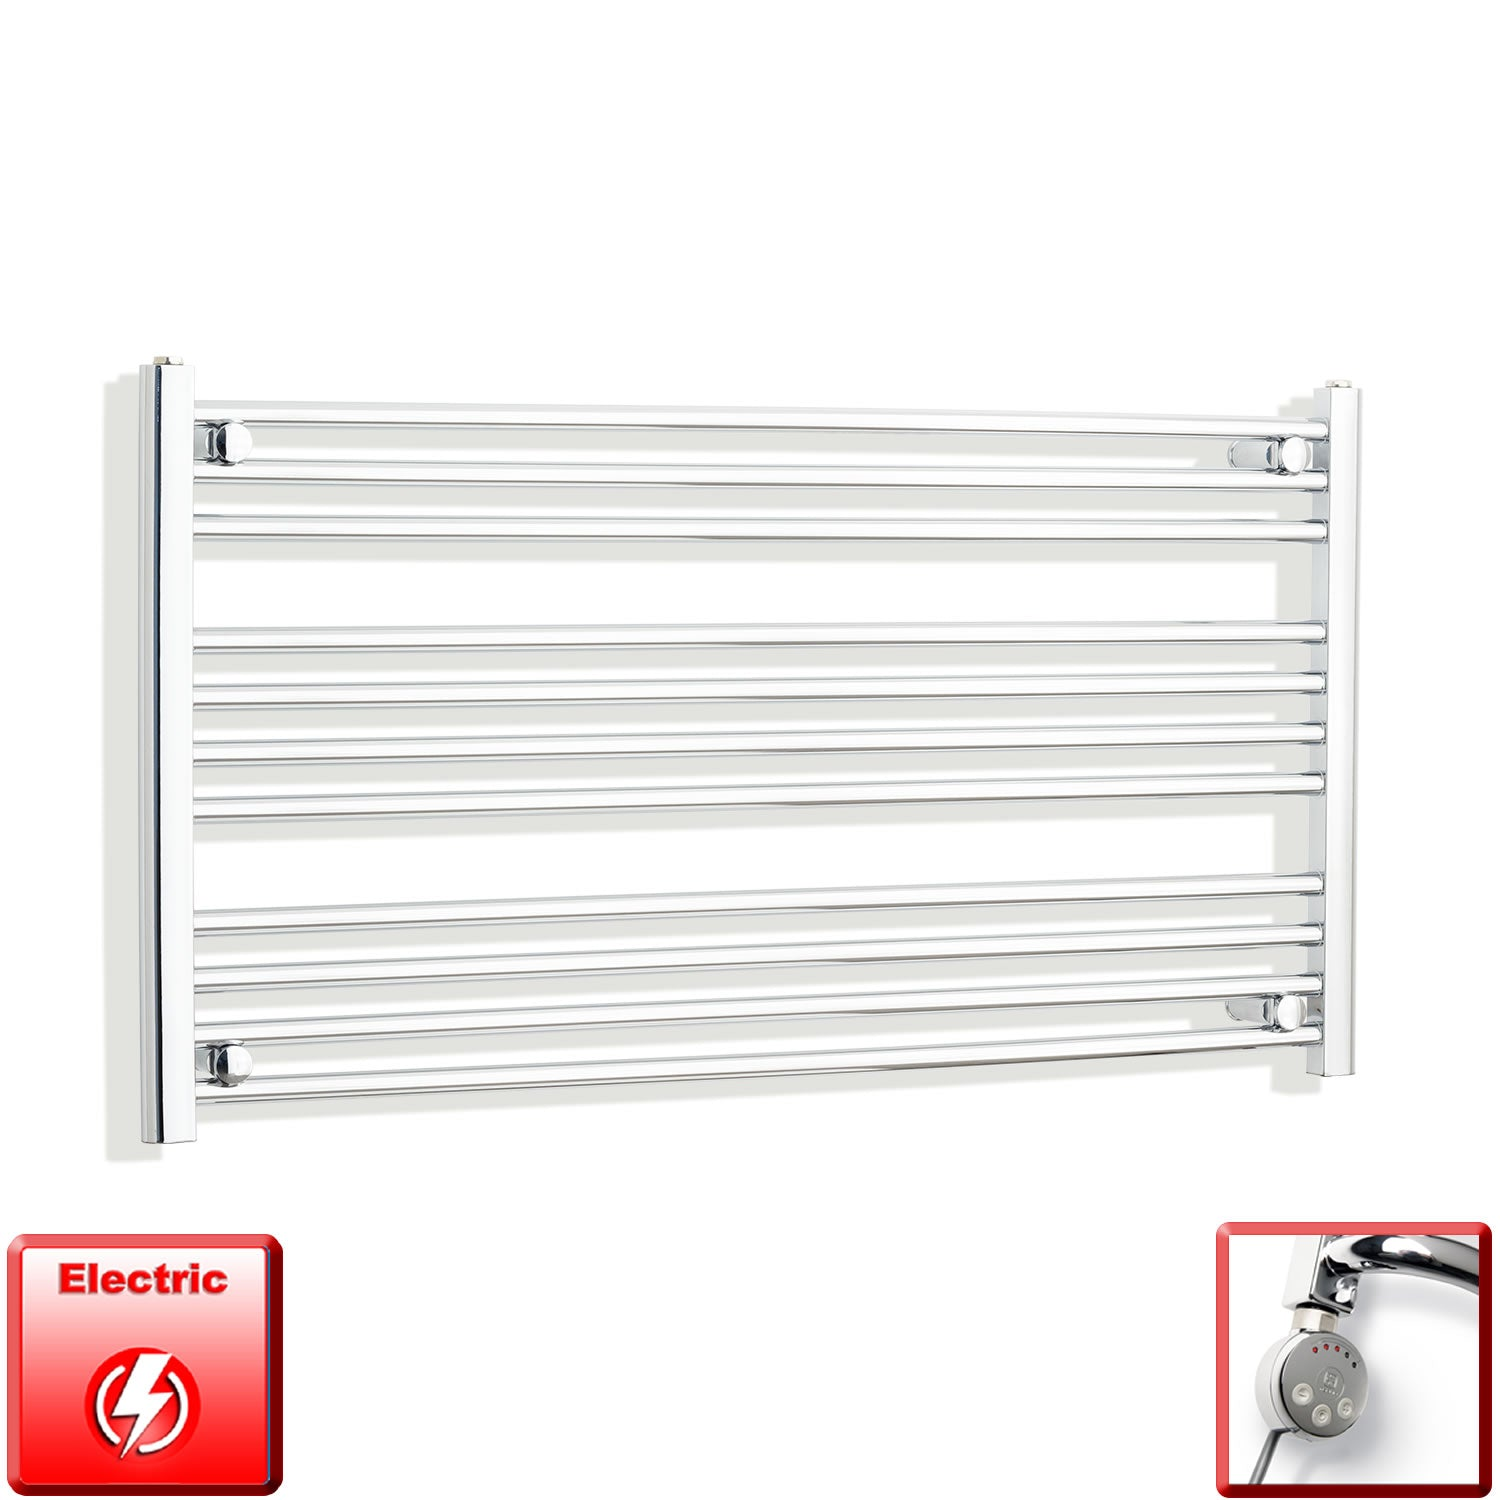 950mm Wide 600mm High Pre-Filled Chrome Electric Towel Rail Radiator With Thermostatic MEG Element